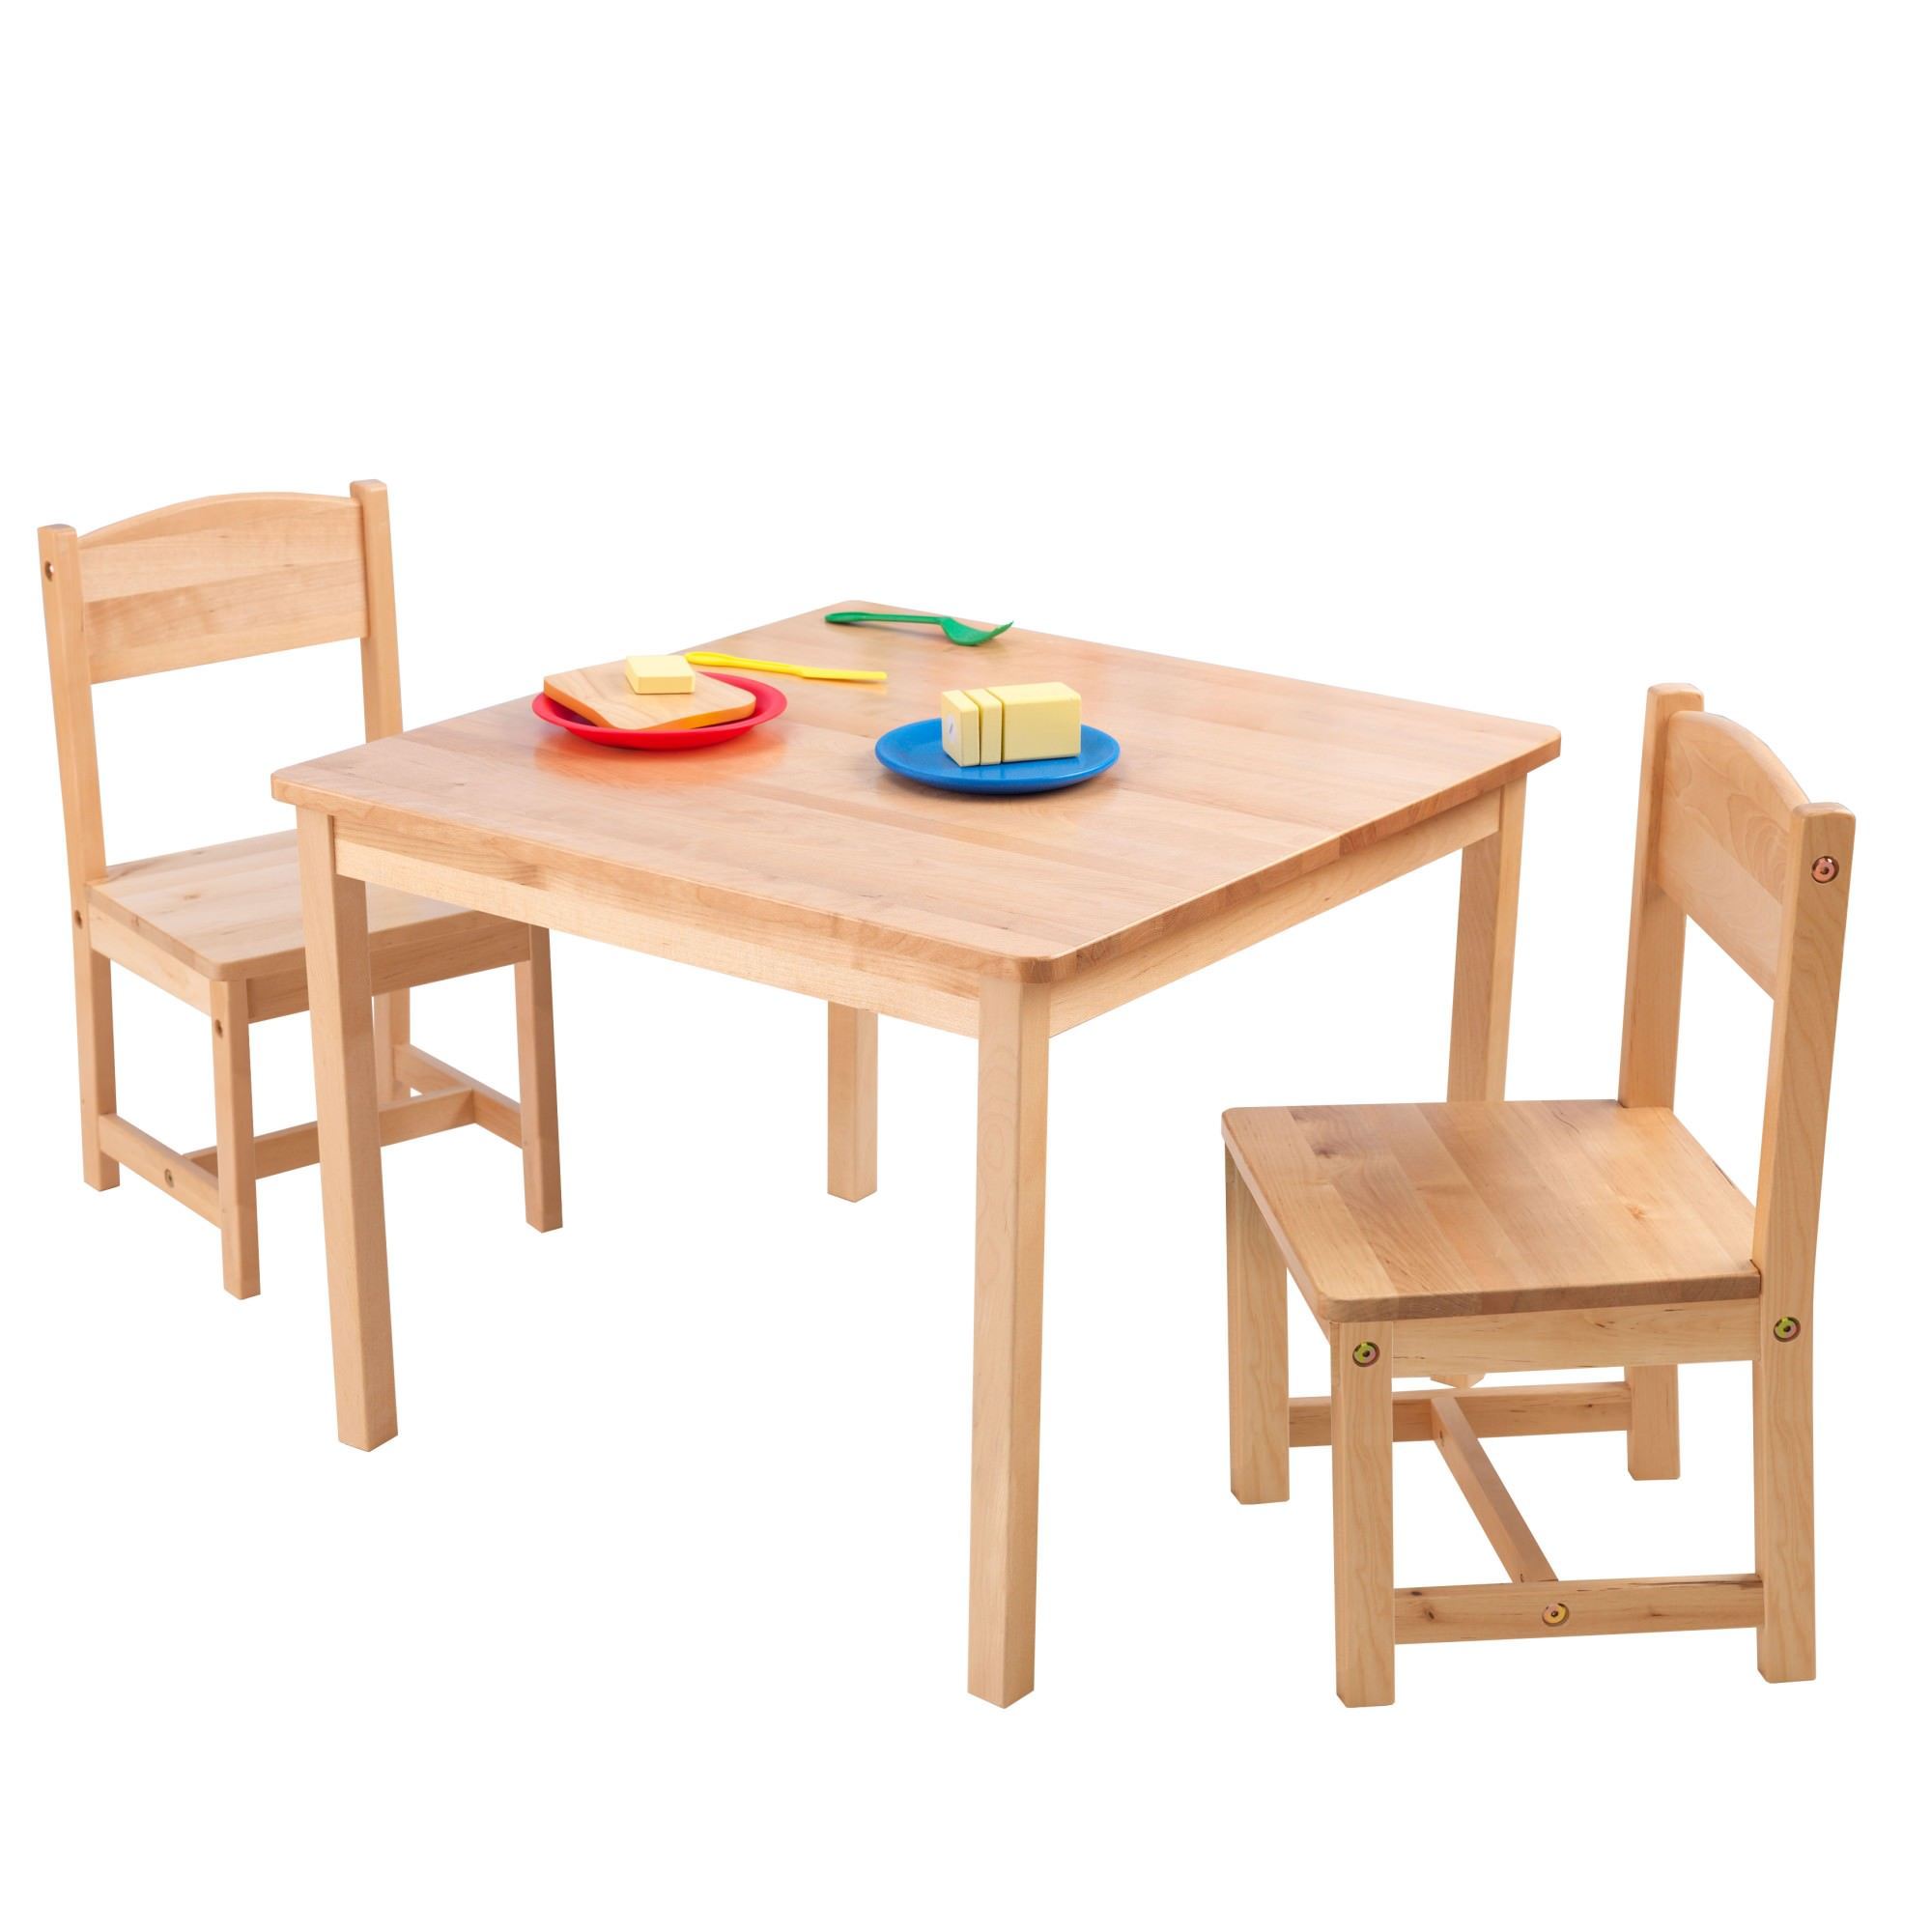 Kidkraft Aspen Table and 2 Chairs - Natural